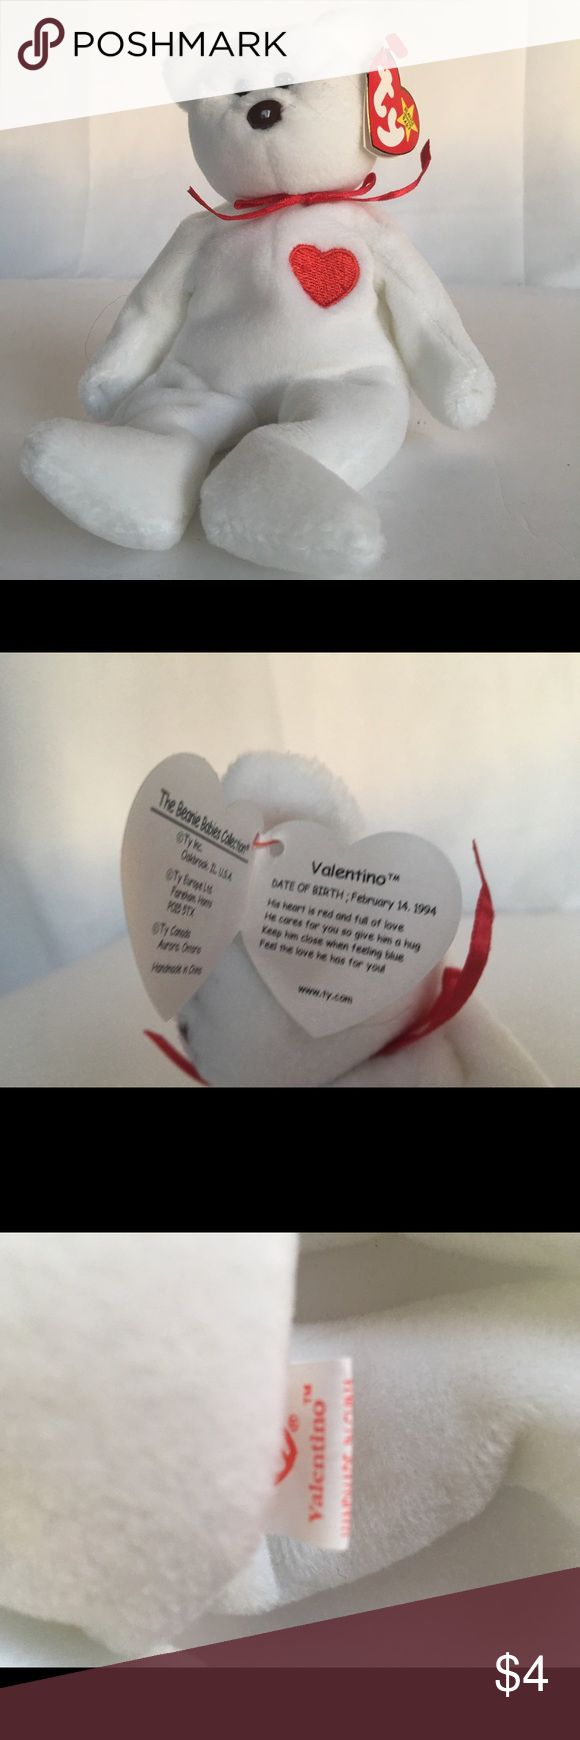 TY Beanie Baby - Valentino Preowned, TY Beanie Baby - Valentino TY Other